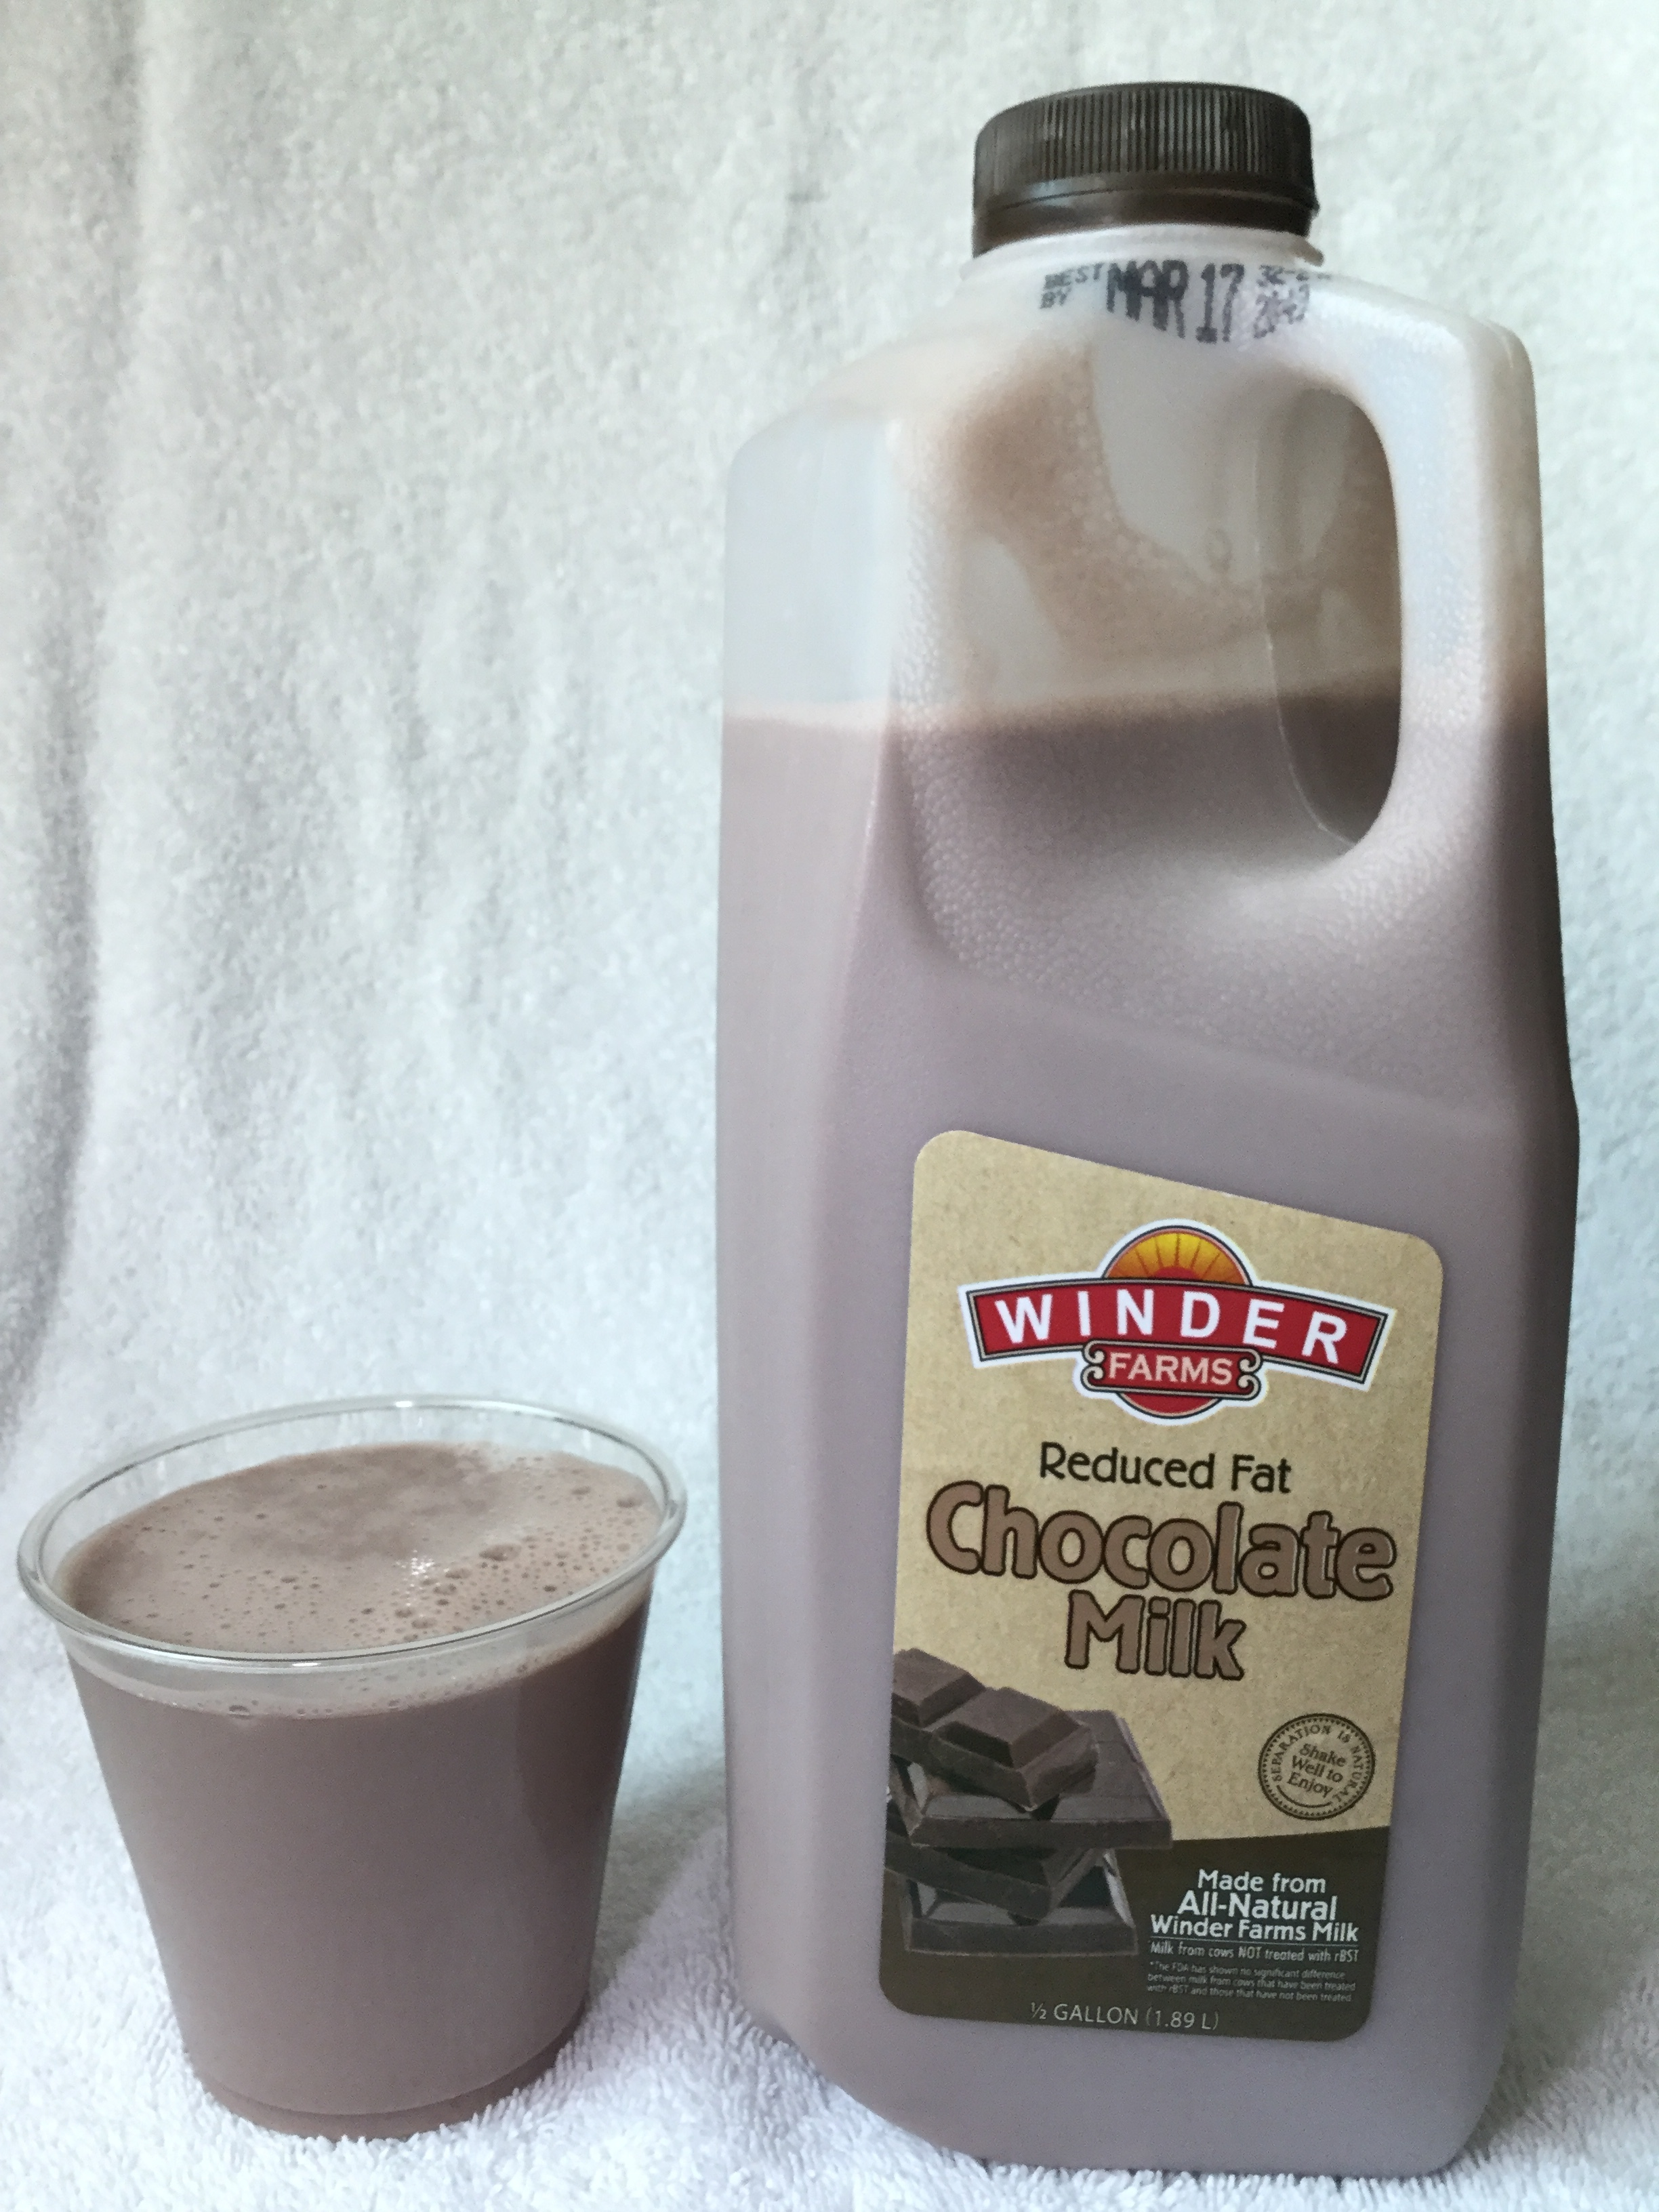 Winder Farms Reduced Fat Chocolate Milk Cup